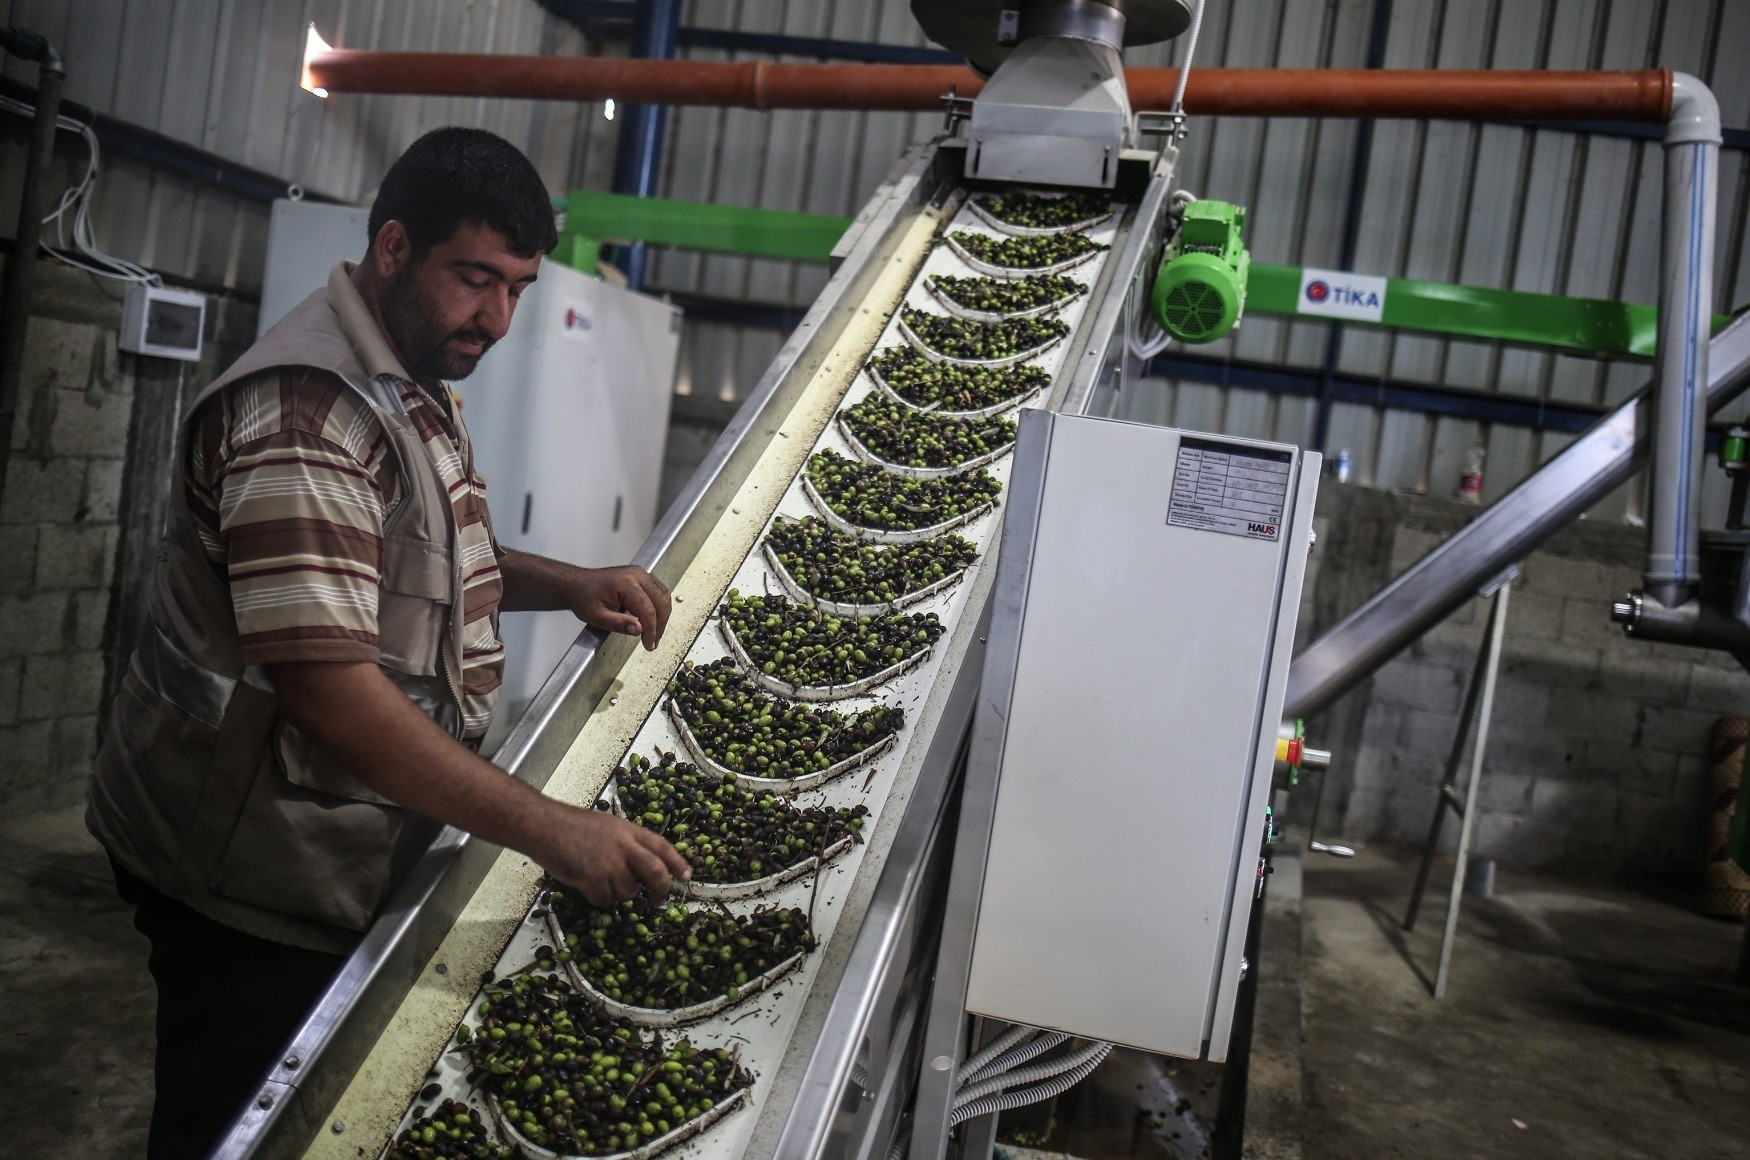 From an olive oil processing plant to food aid, Tu0130KA helps Palestinians sustain their daily lives under Israeli oppression.